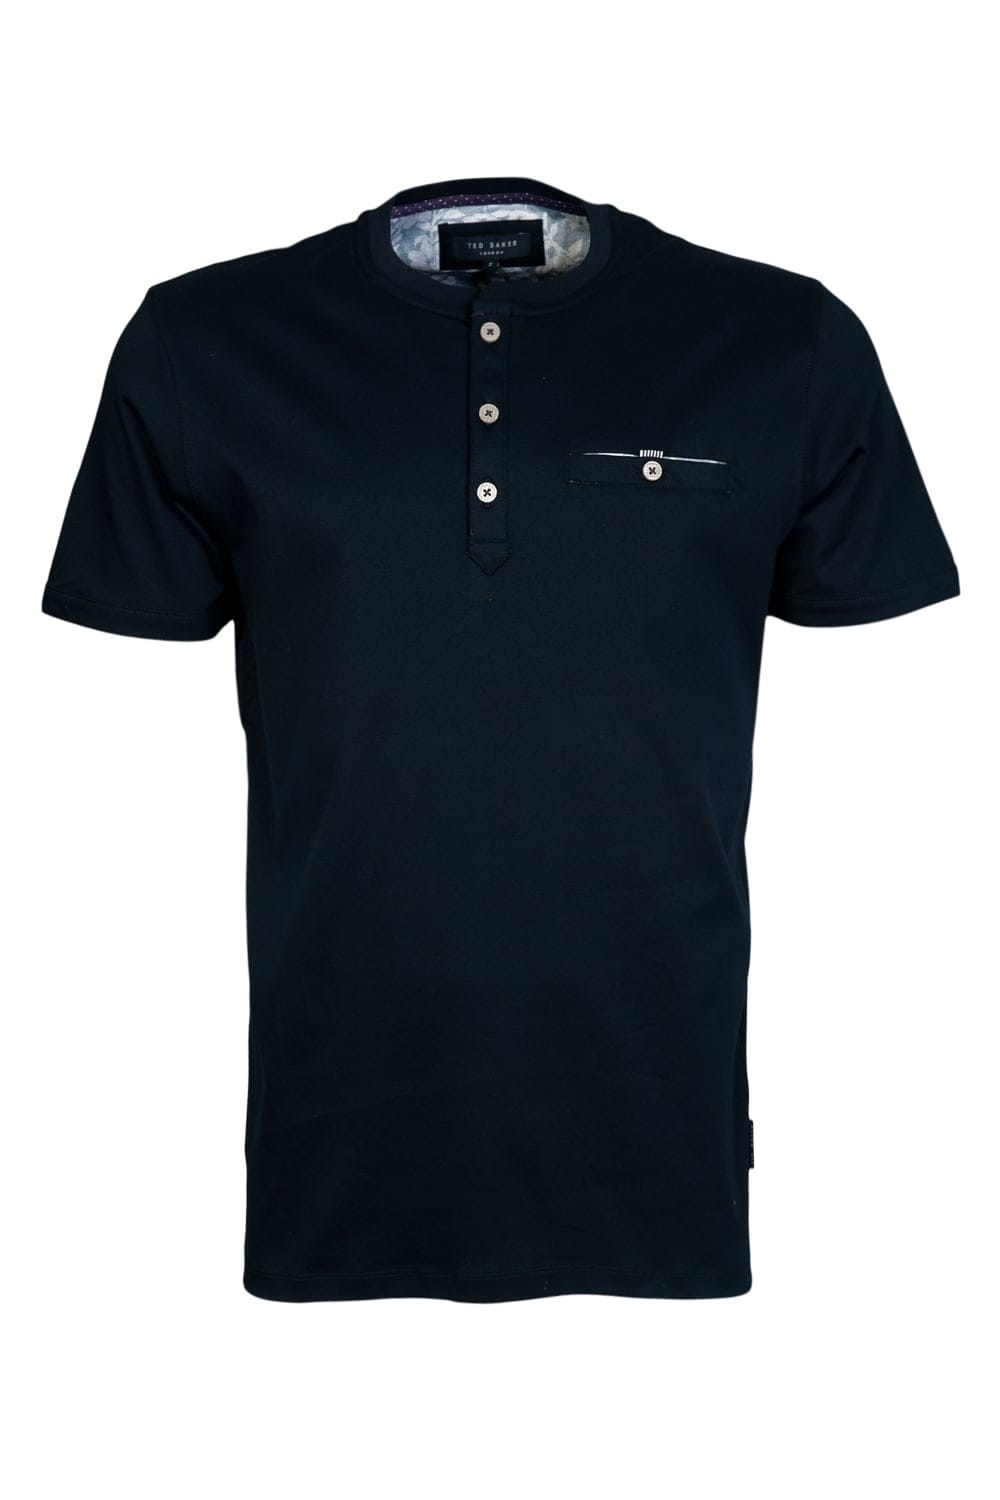 Ted baker t shirt ts6m gb74 shortay 10 clothing from for Ted baker shirts sale online